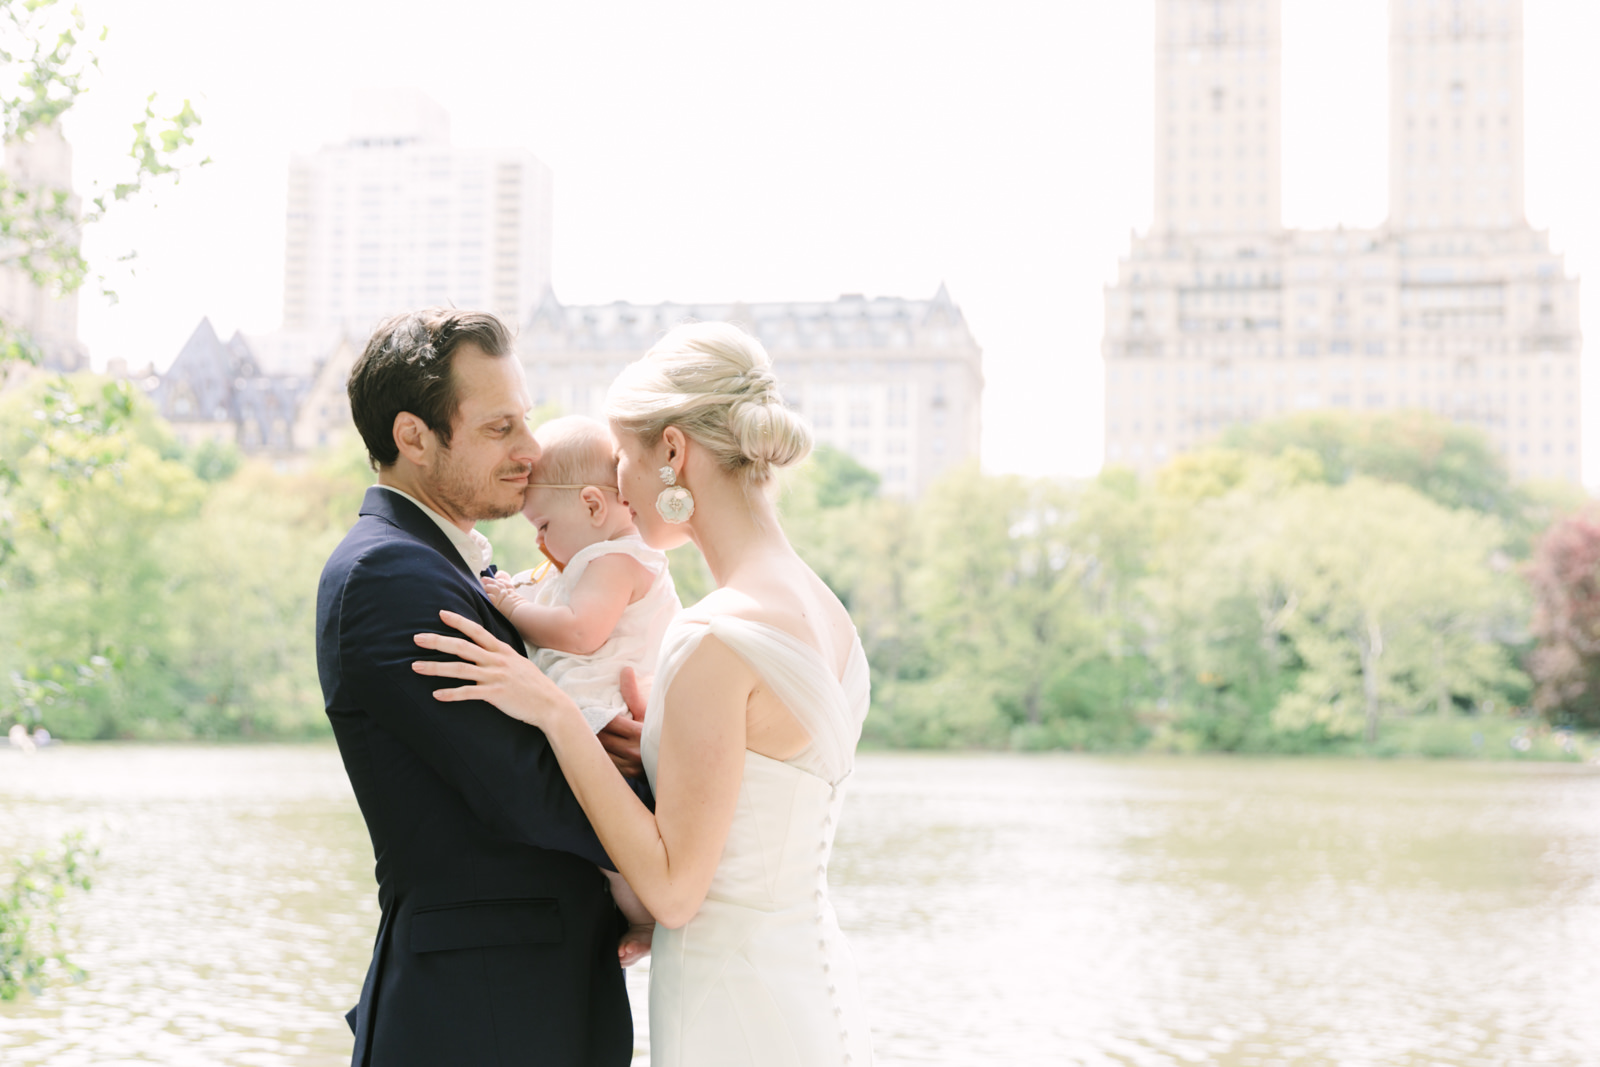 Intimate-NYC_wedding_ by Tanya Isaeva-102.jpg